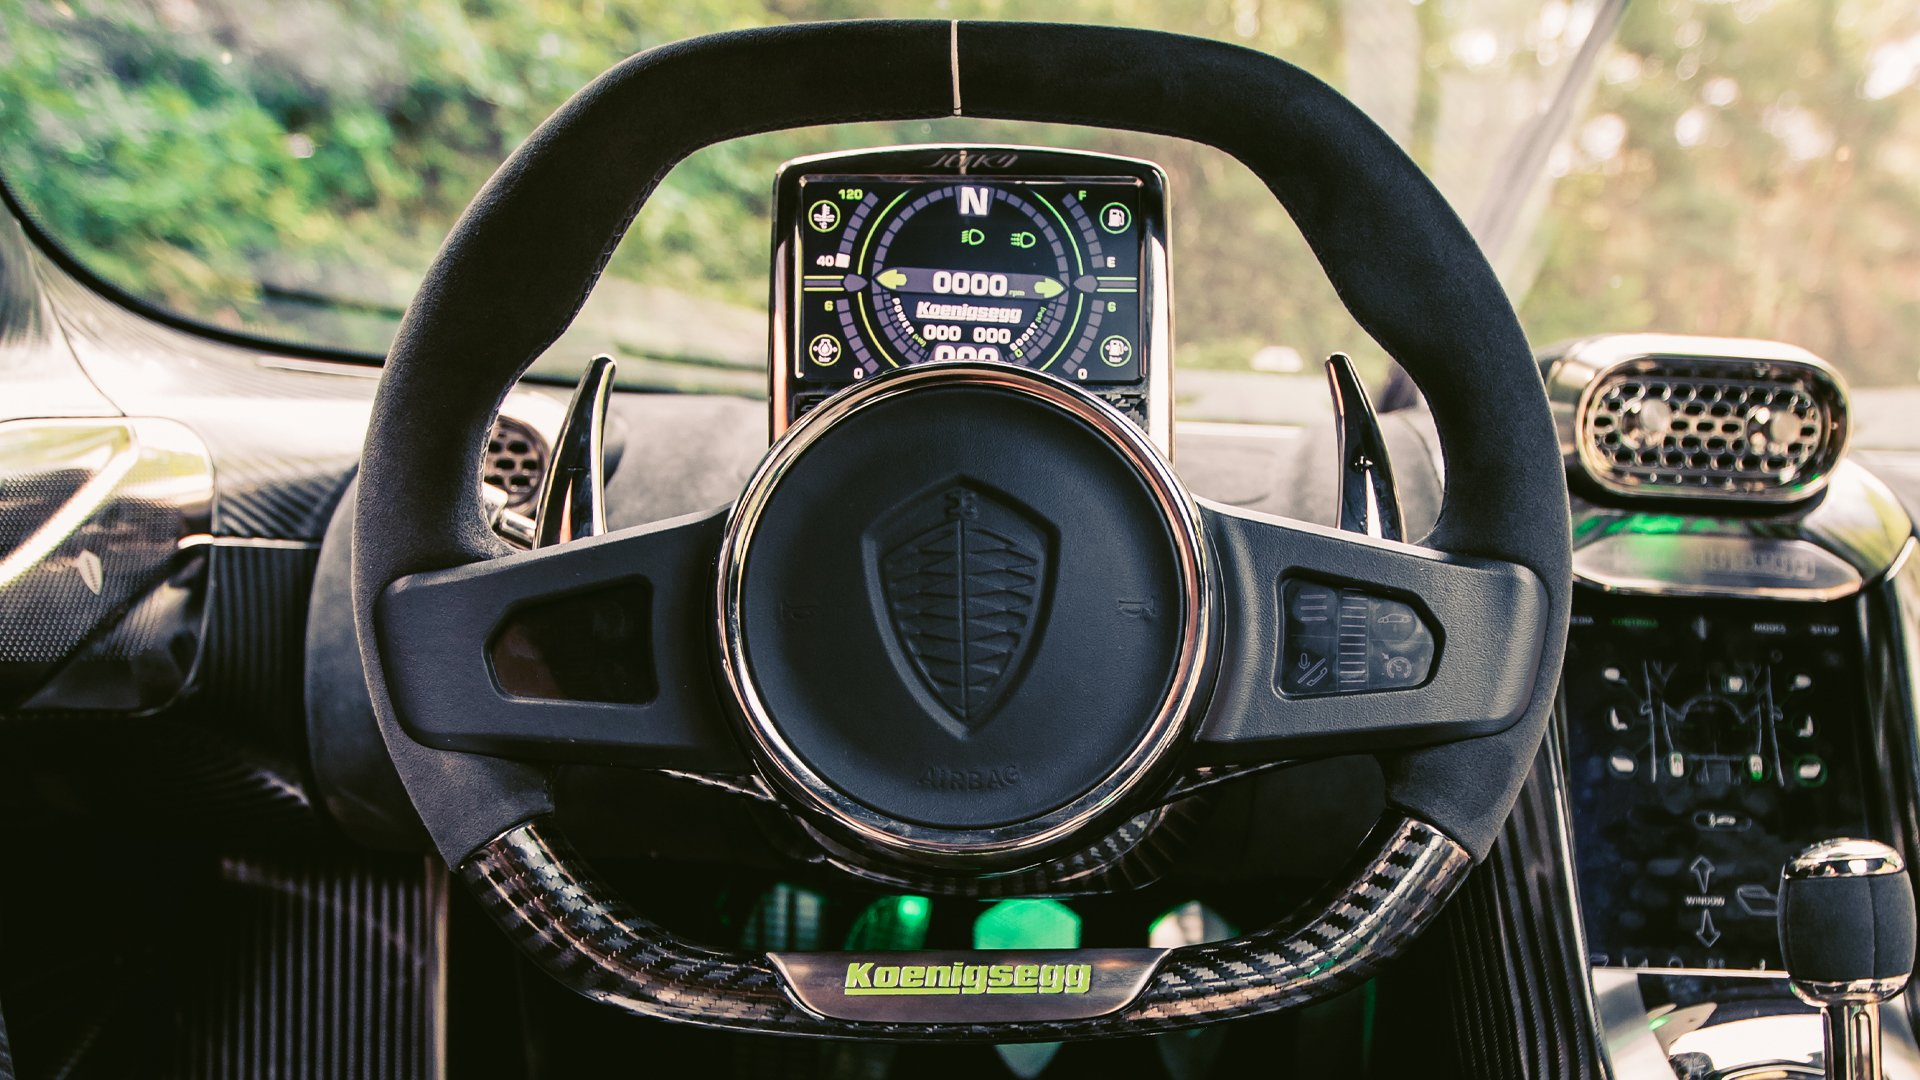 2019 Koenigsegg Jesko In Sunningdale, United Kingdom For